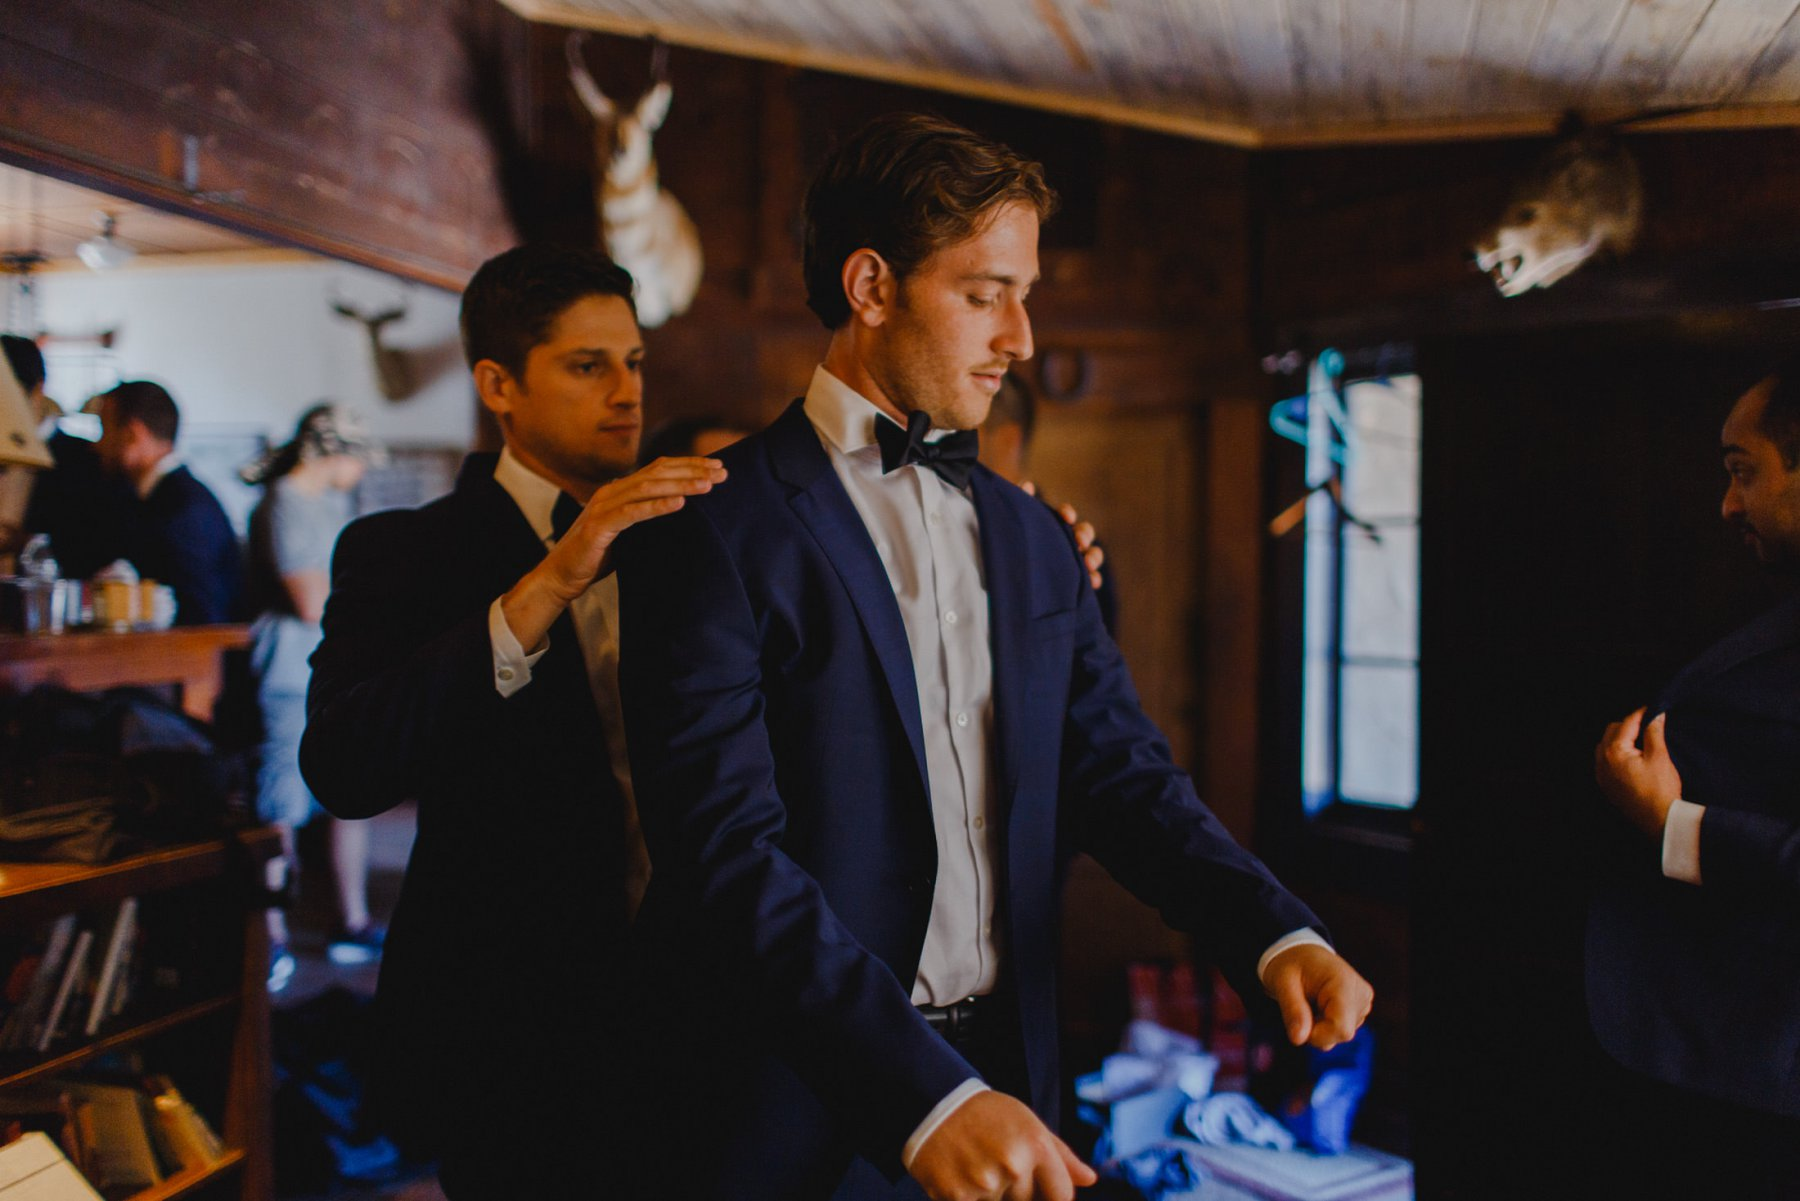 groom getting ready Saguaro Lake Ranch wedding